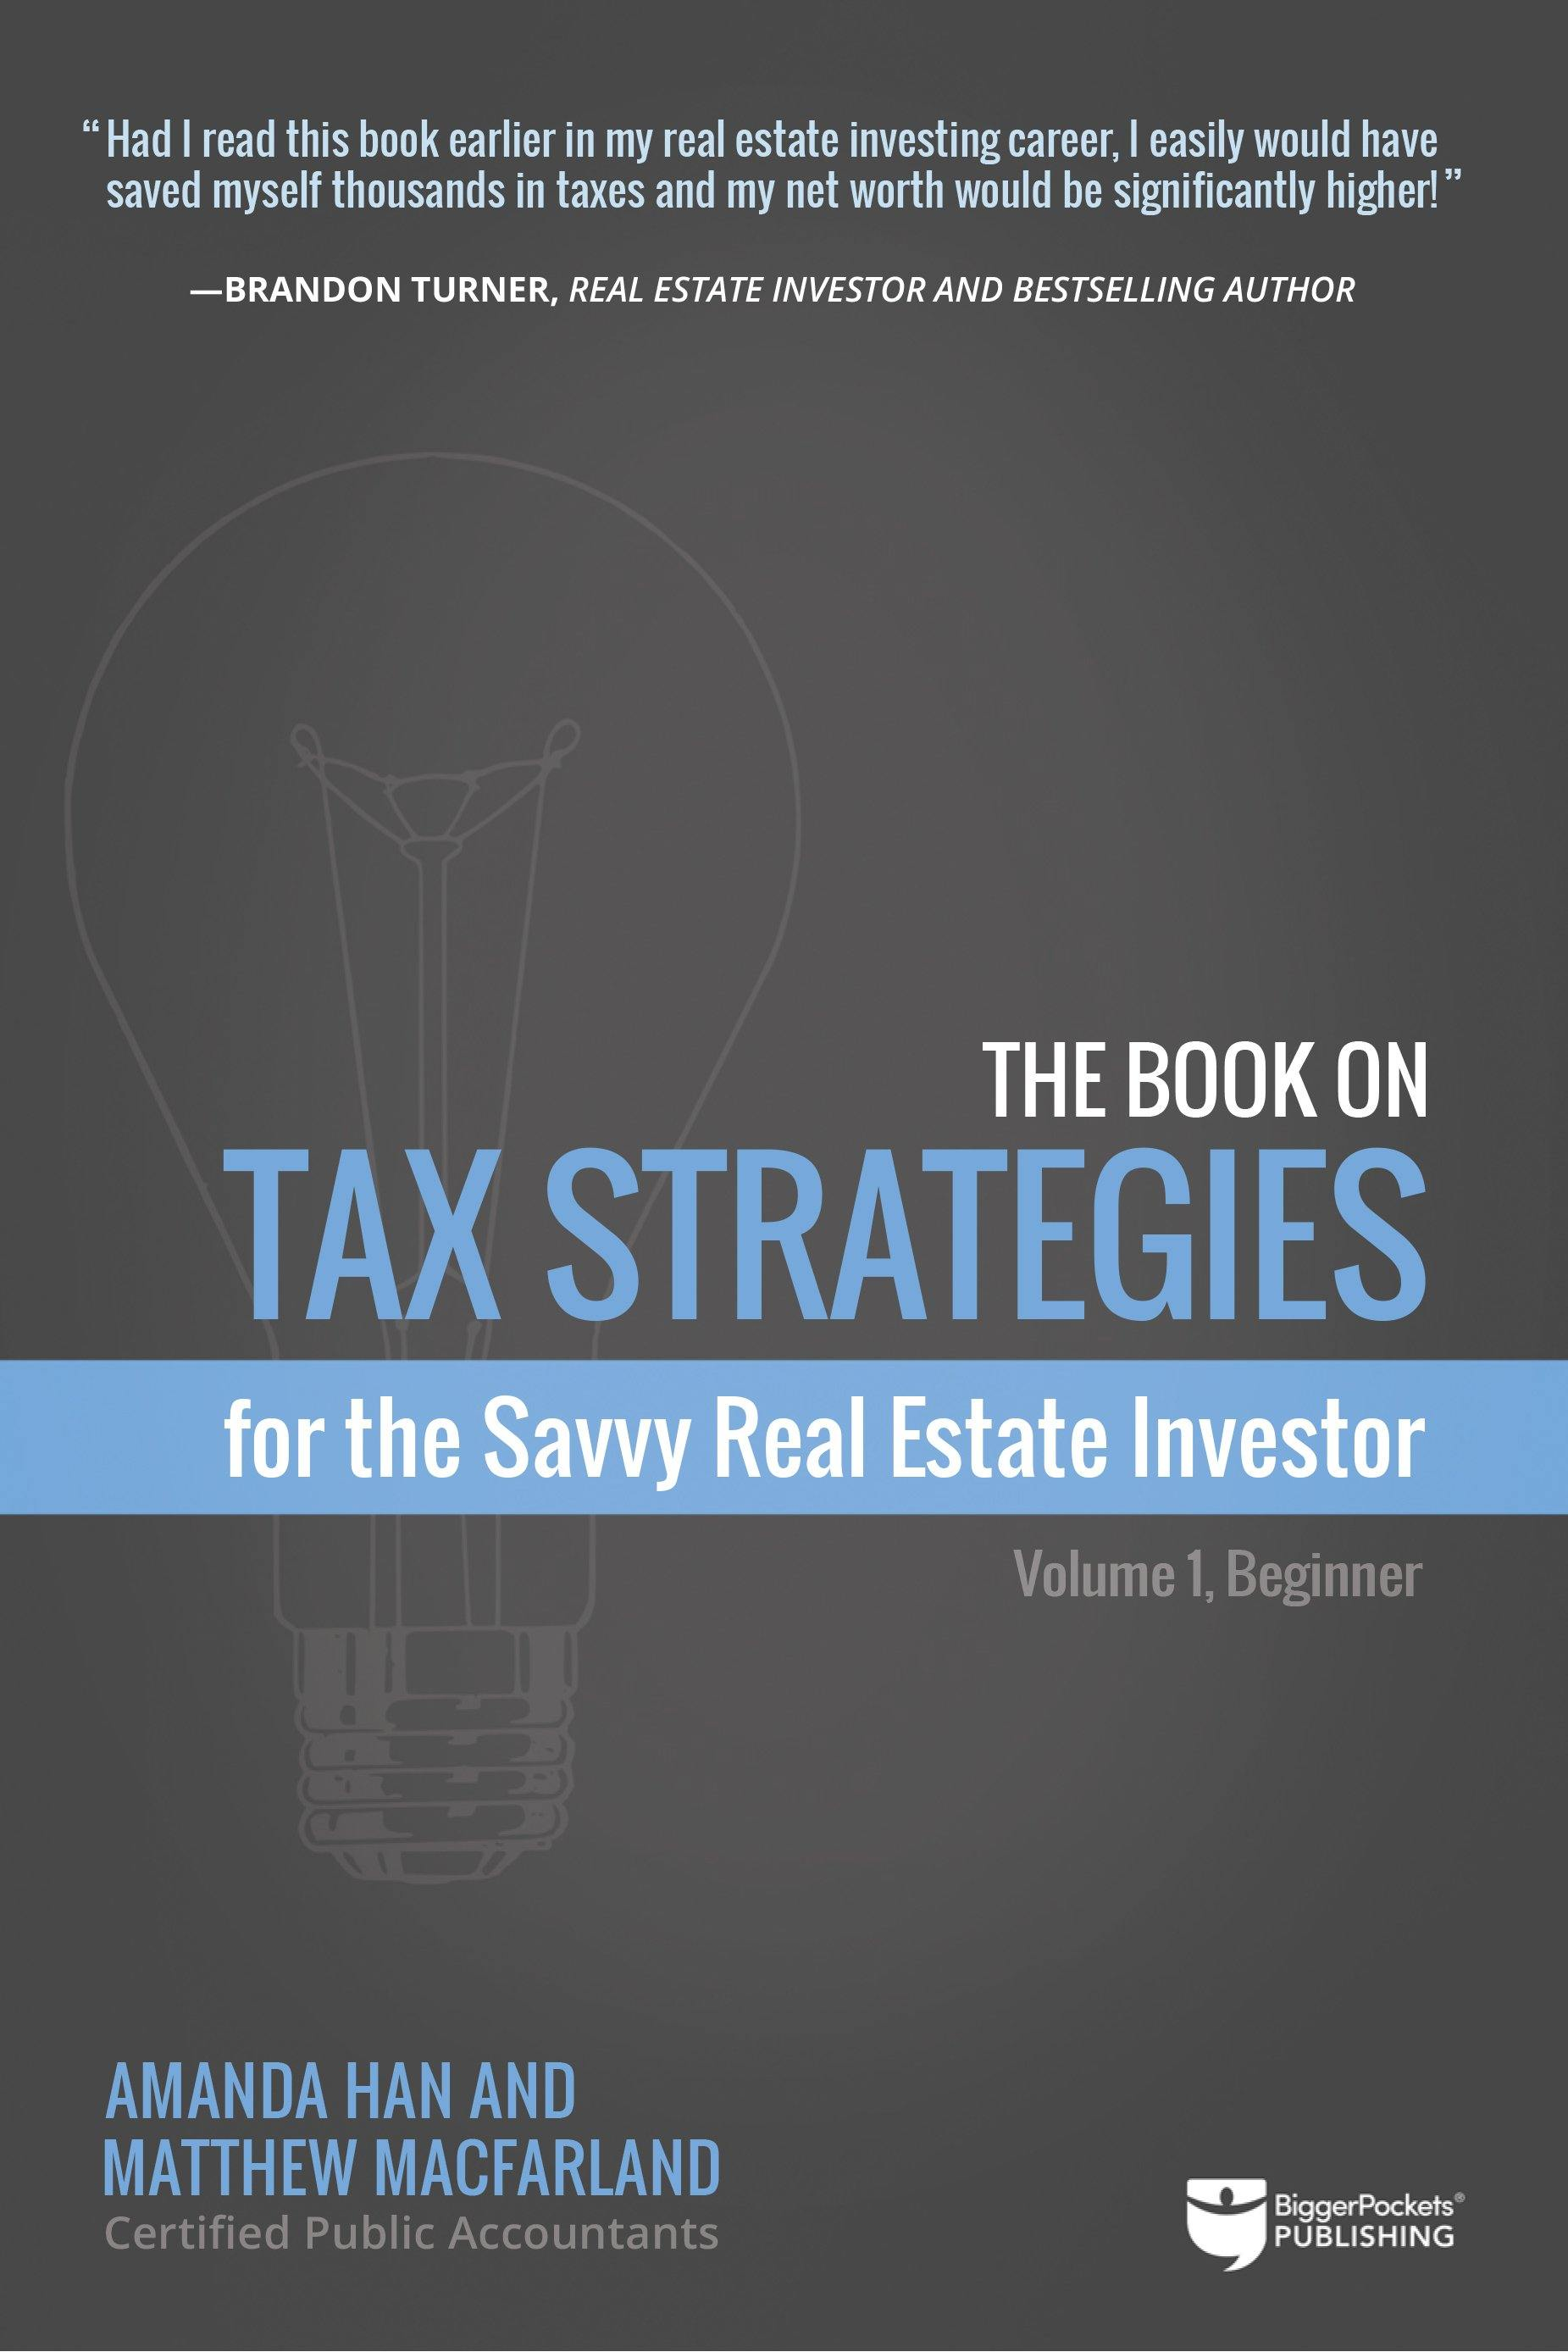 The Book on Tax Strategies for the Savvy Real Estate Investor Paperback